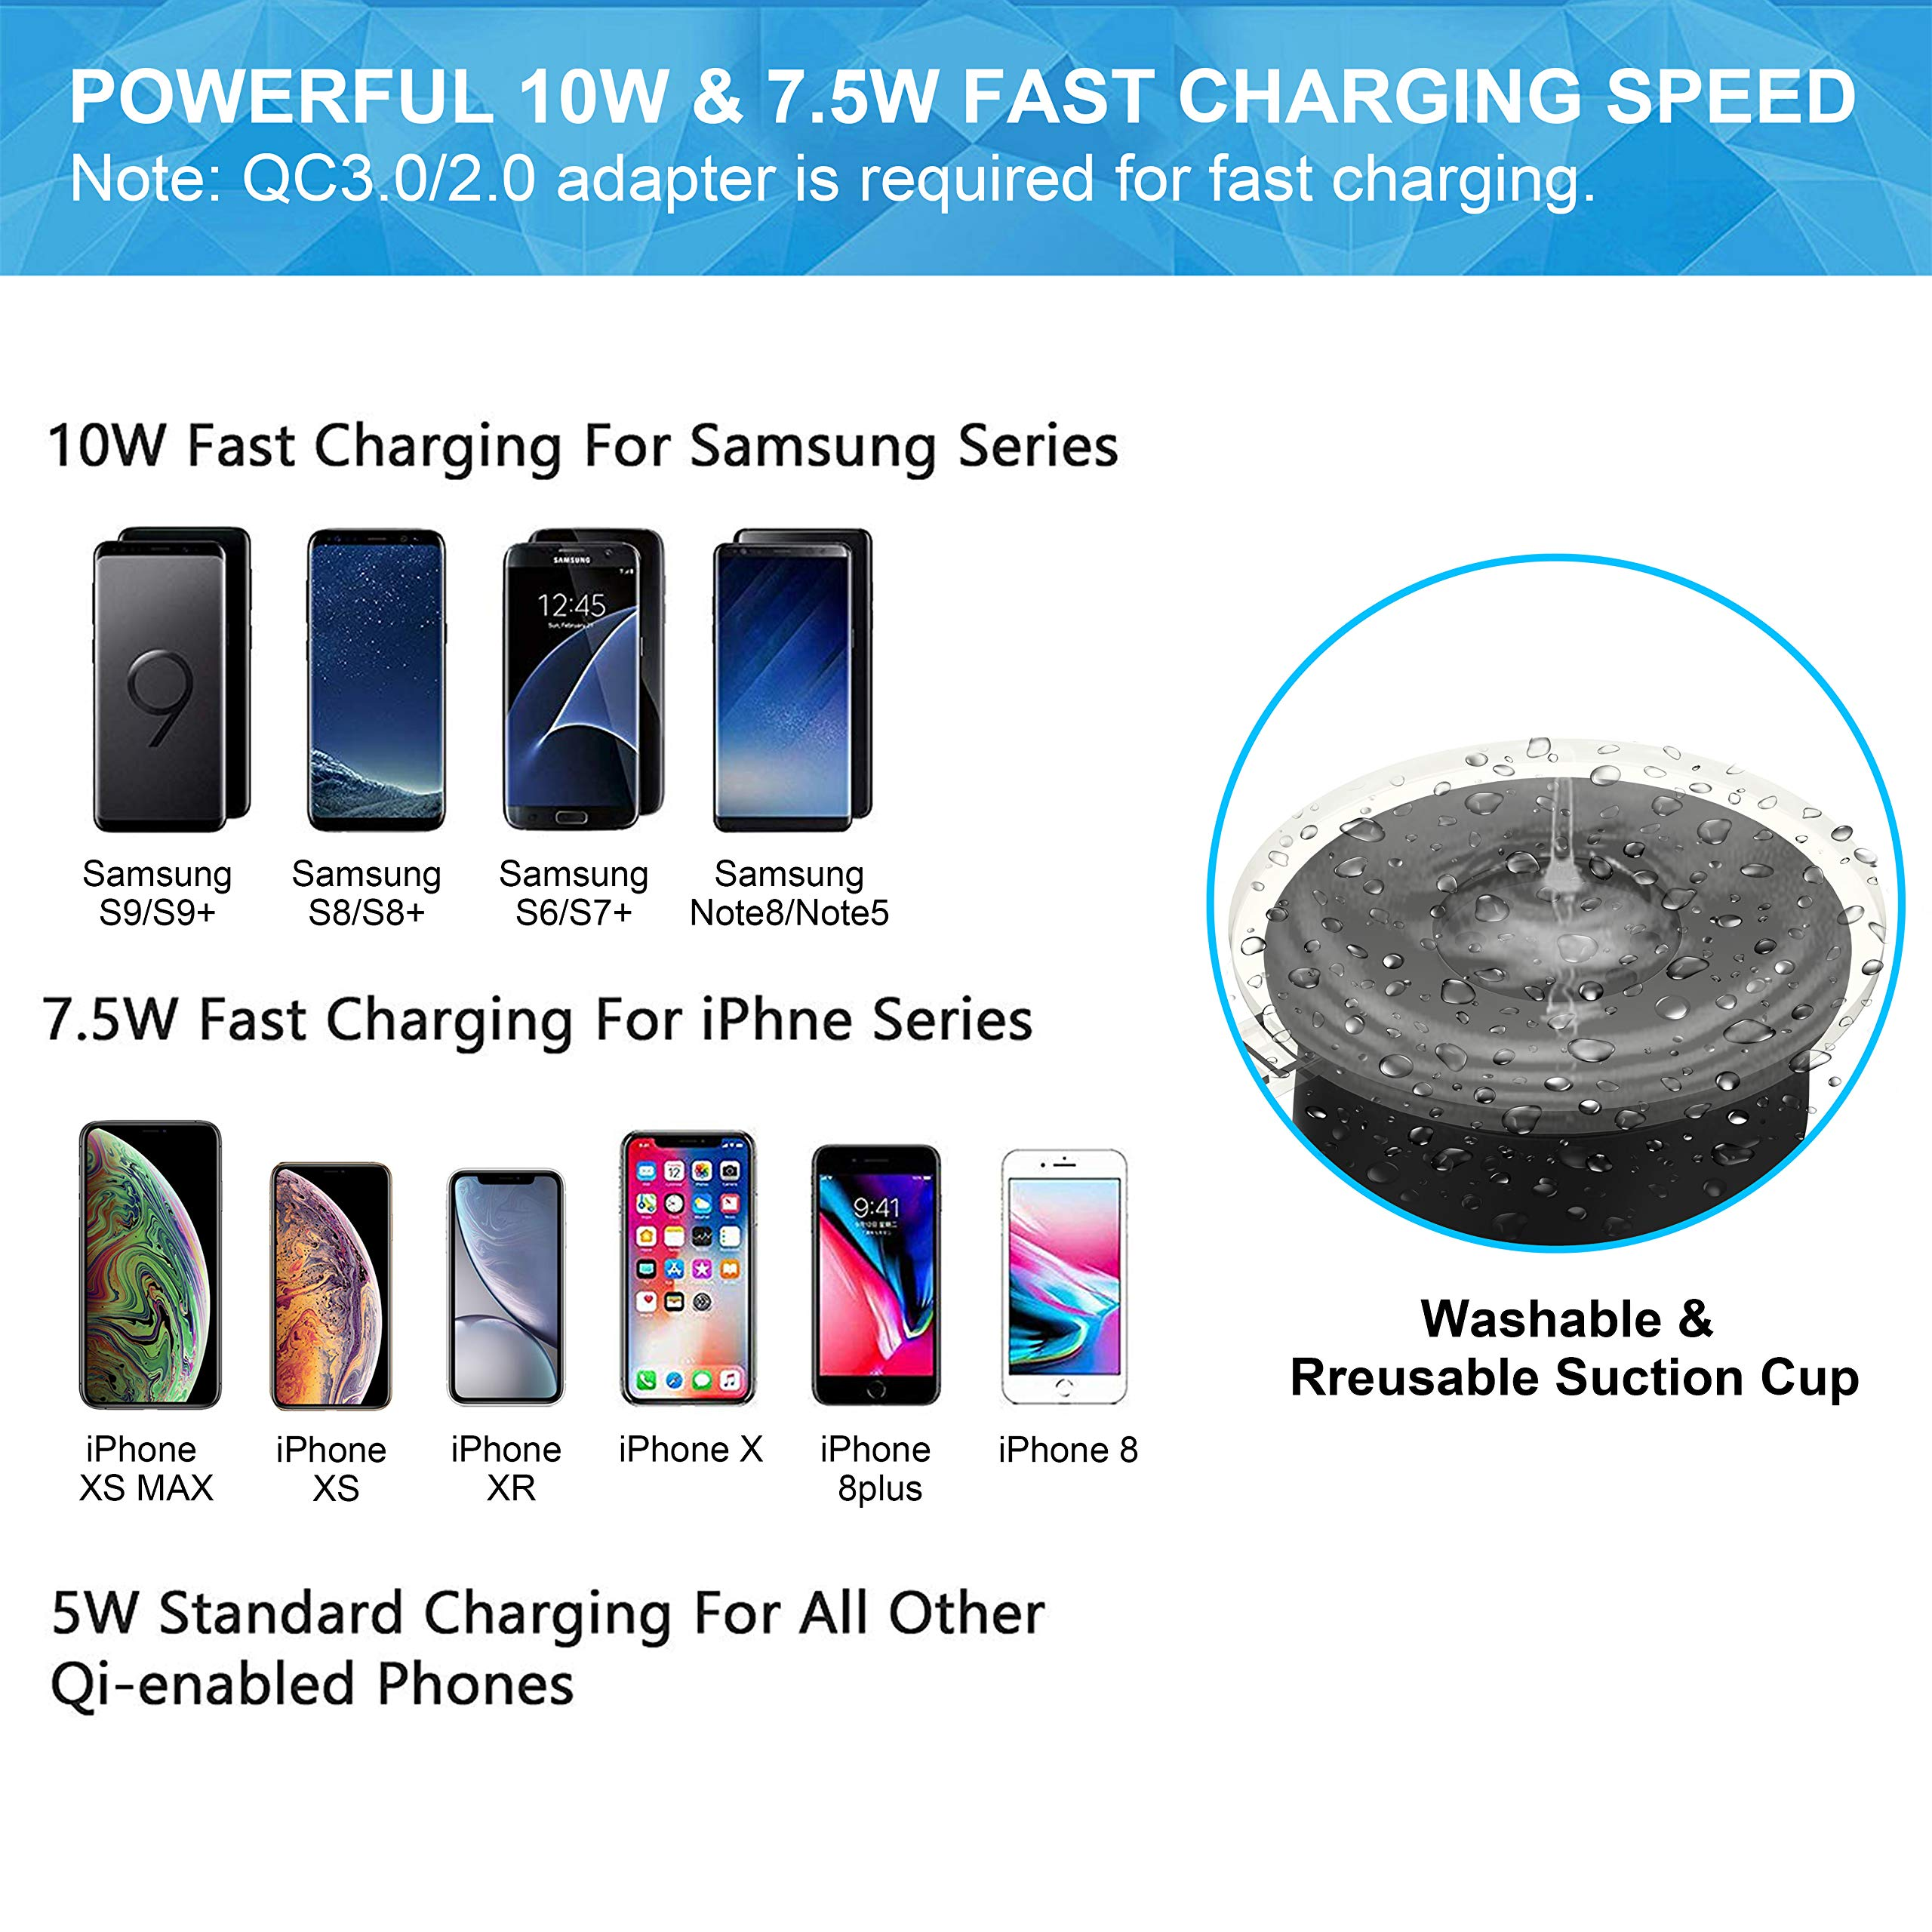 BESTHING 7.5W & 10W Wireless Charger, Dashboard & Windshield Car Mount, Cell Phone Holder, 10W Compatible for Samsung Galaxy S9/S9+/S8/S8+/Note 8, 7.5W Compatible for iPhone Xs Max/Xs/XR/X/ 8/8 Plus by BESTHING (Image #5)